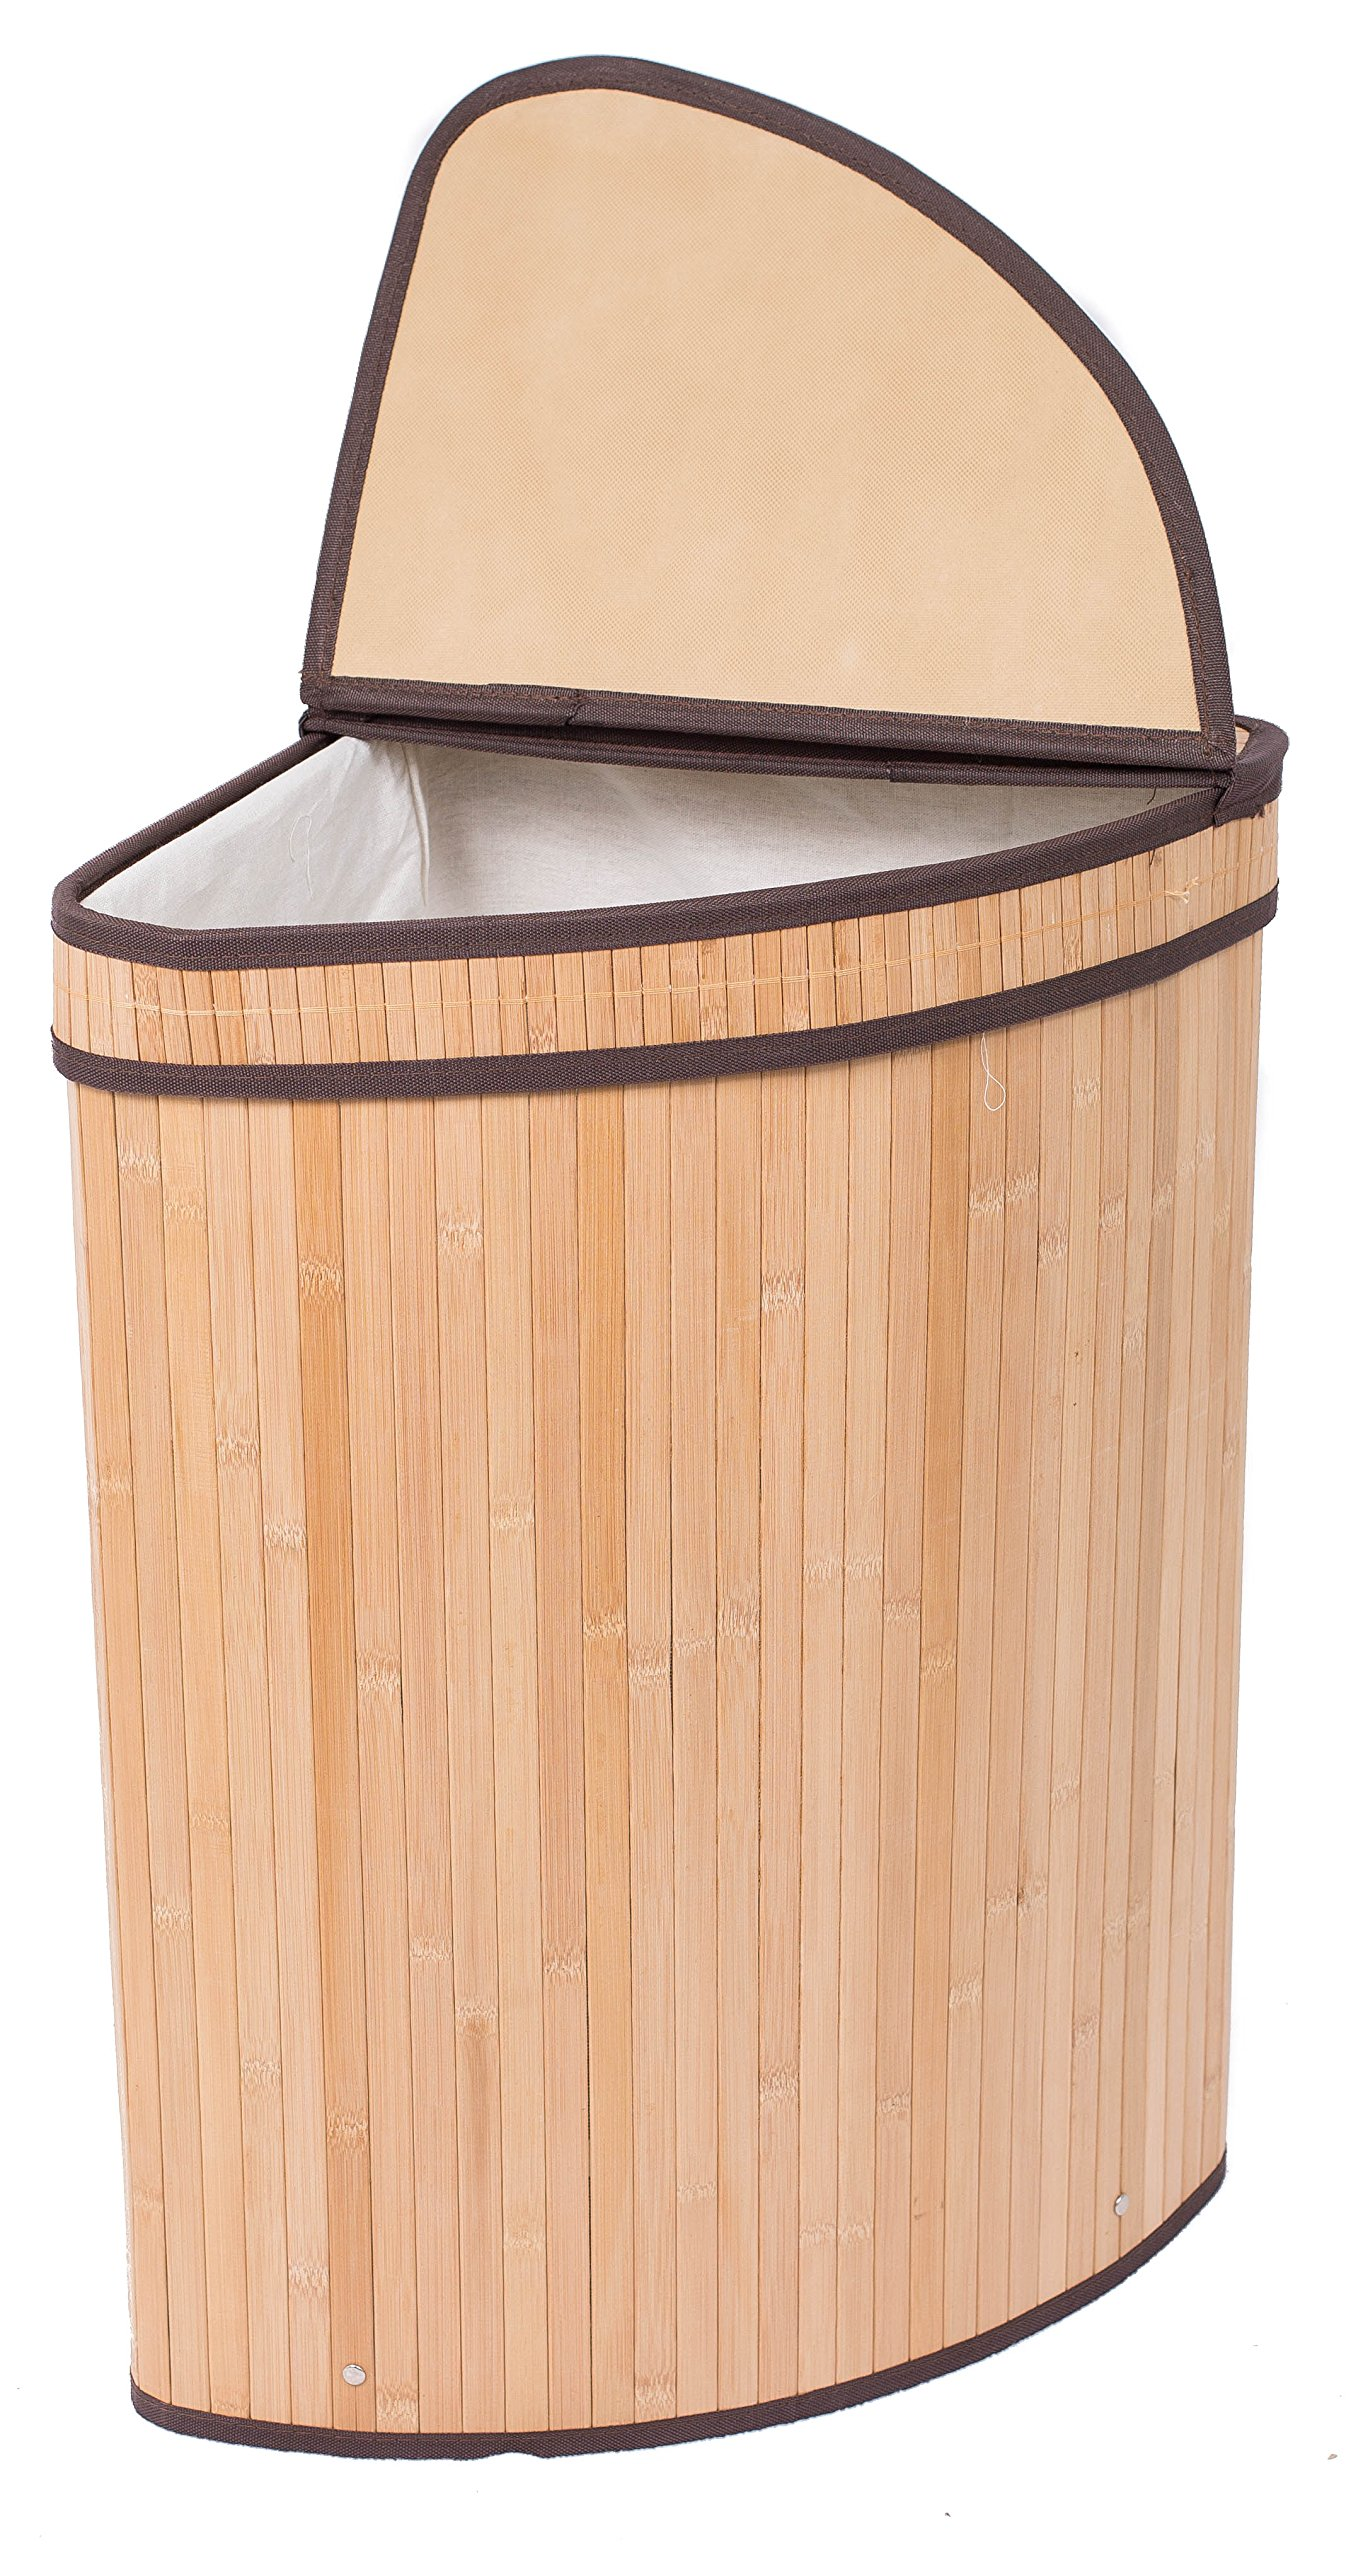 birdrock home corner laundry hamper with lid and cloth liner bamboo natural easily